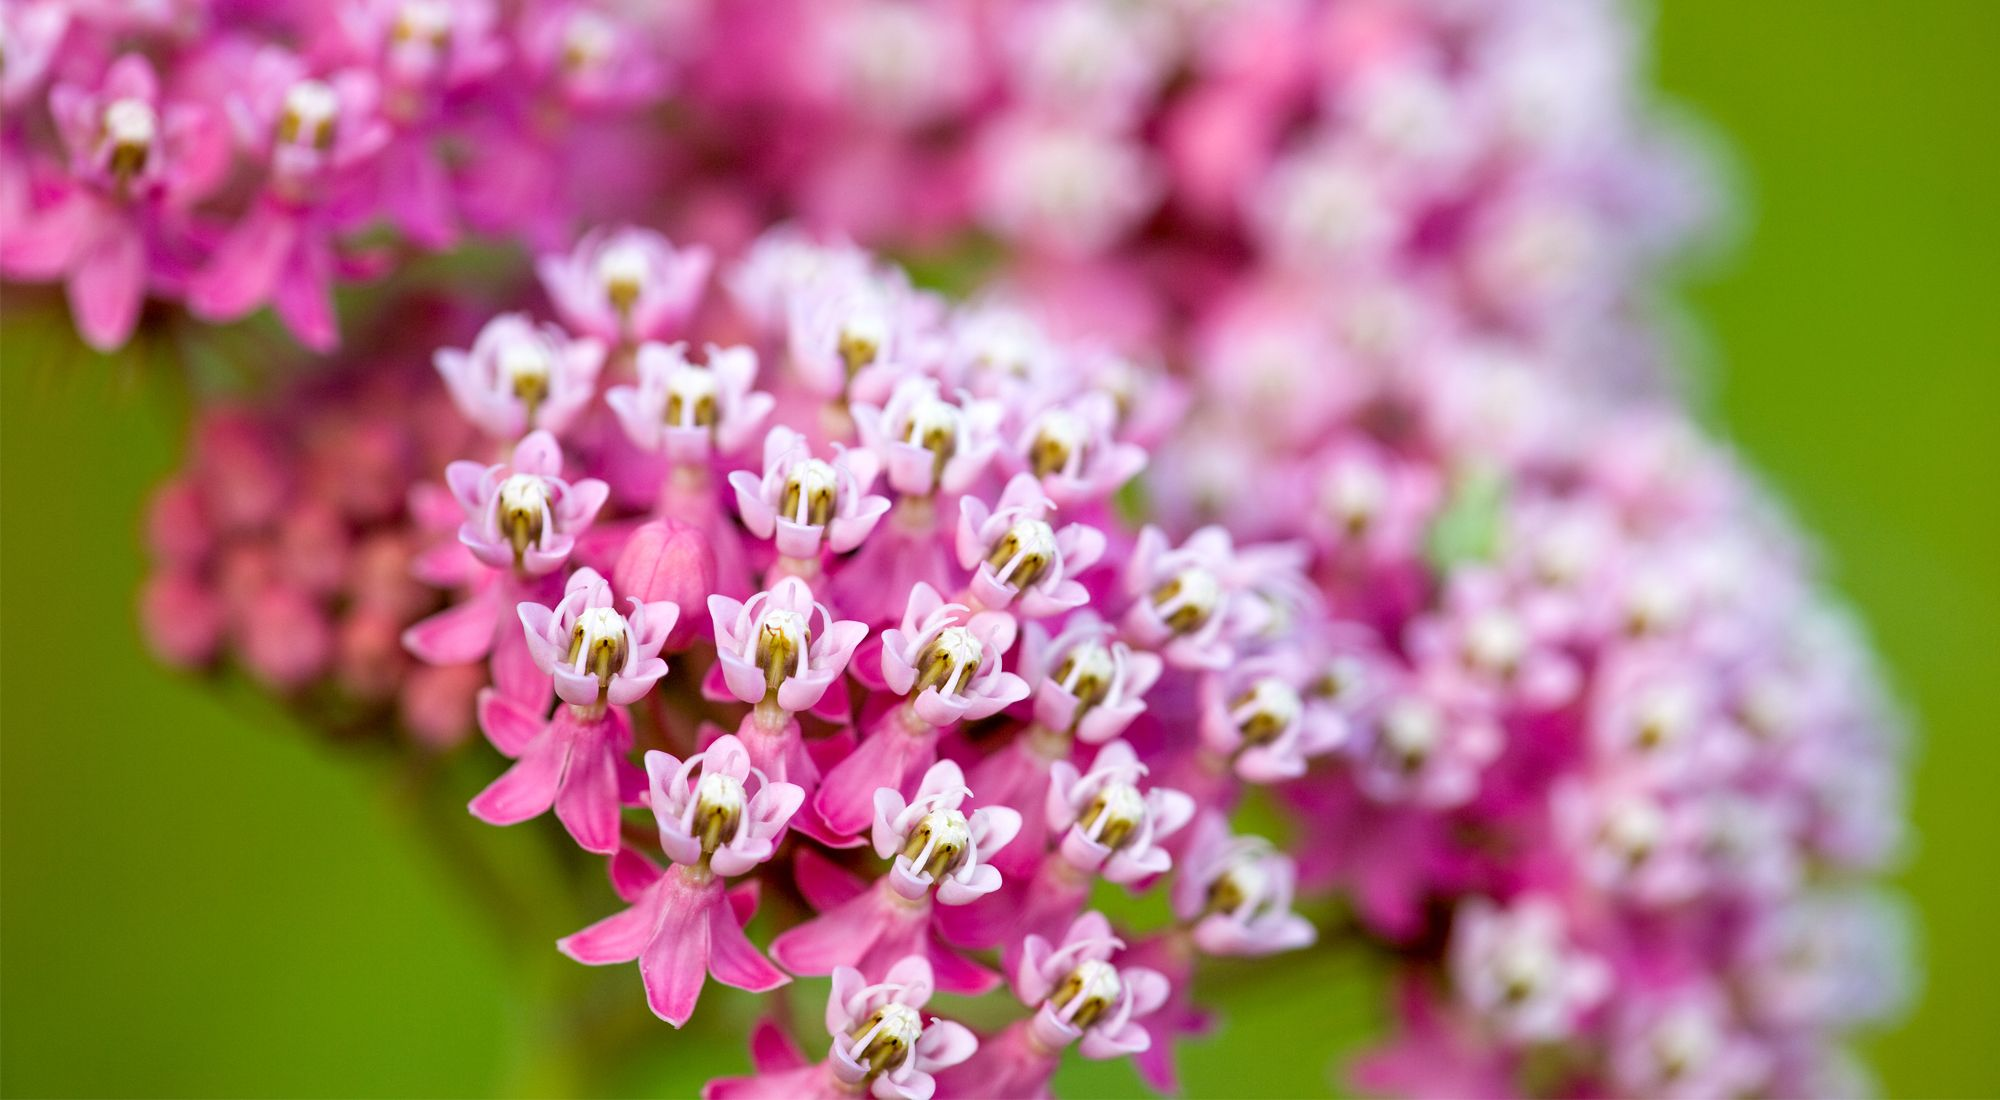 Close-up of hot pink and white blossoms of a milkweed plant